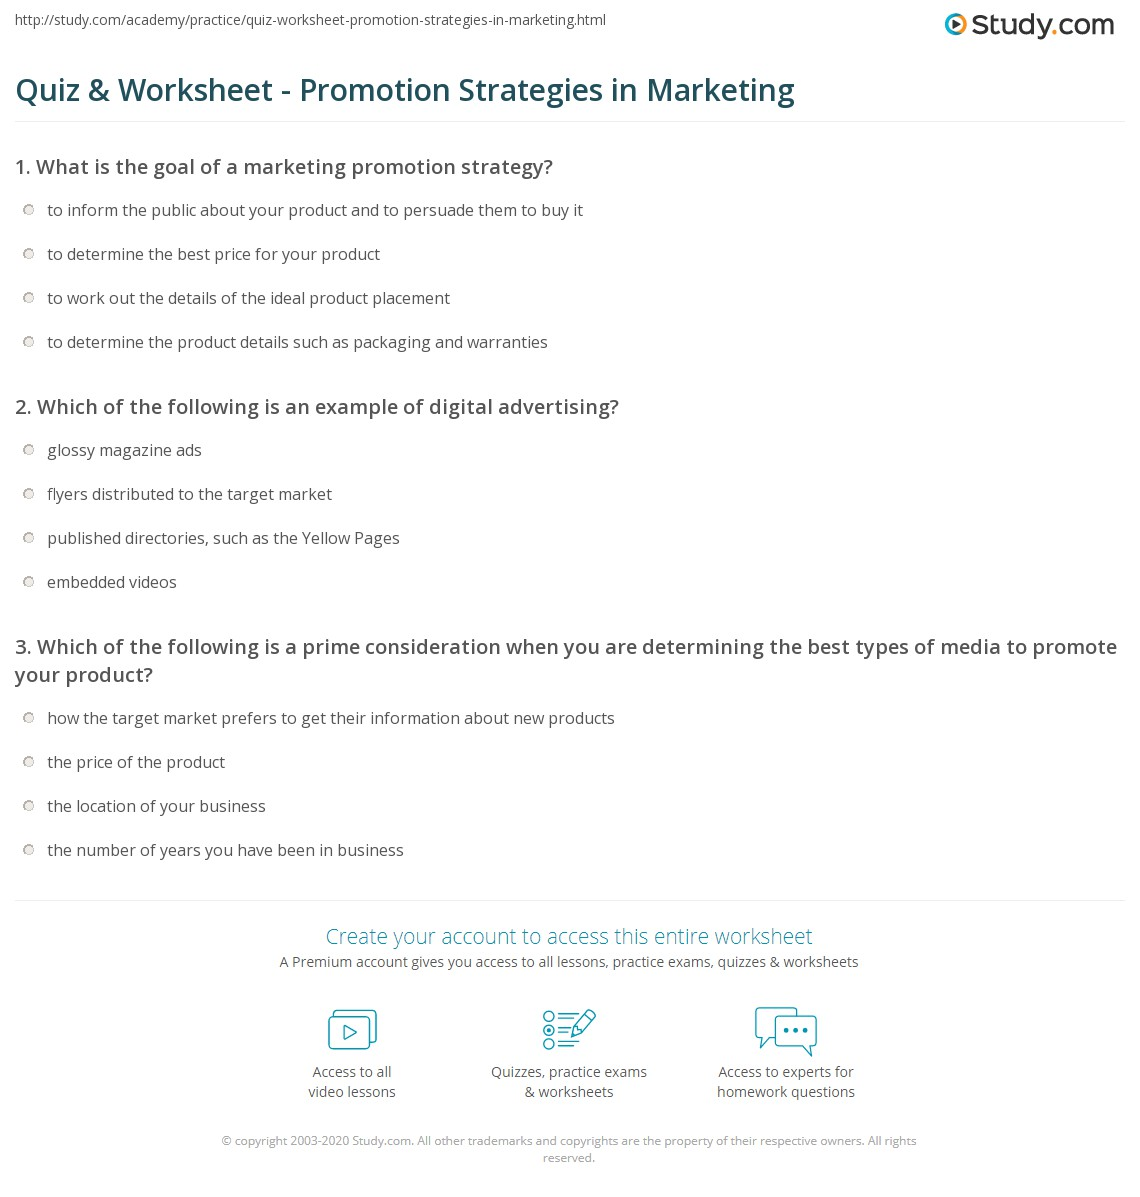 Quiz & Worksheet - Promotion Strategies in Marketing | Study.com